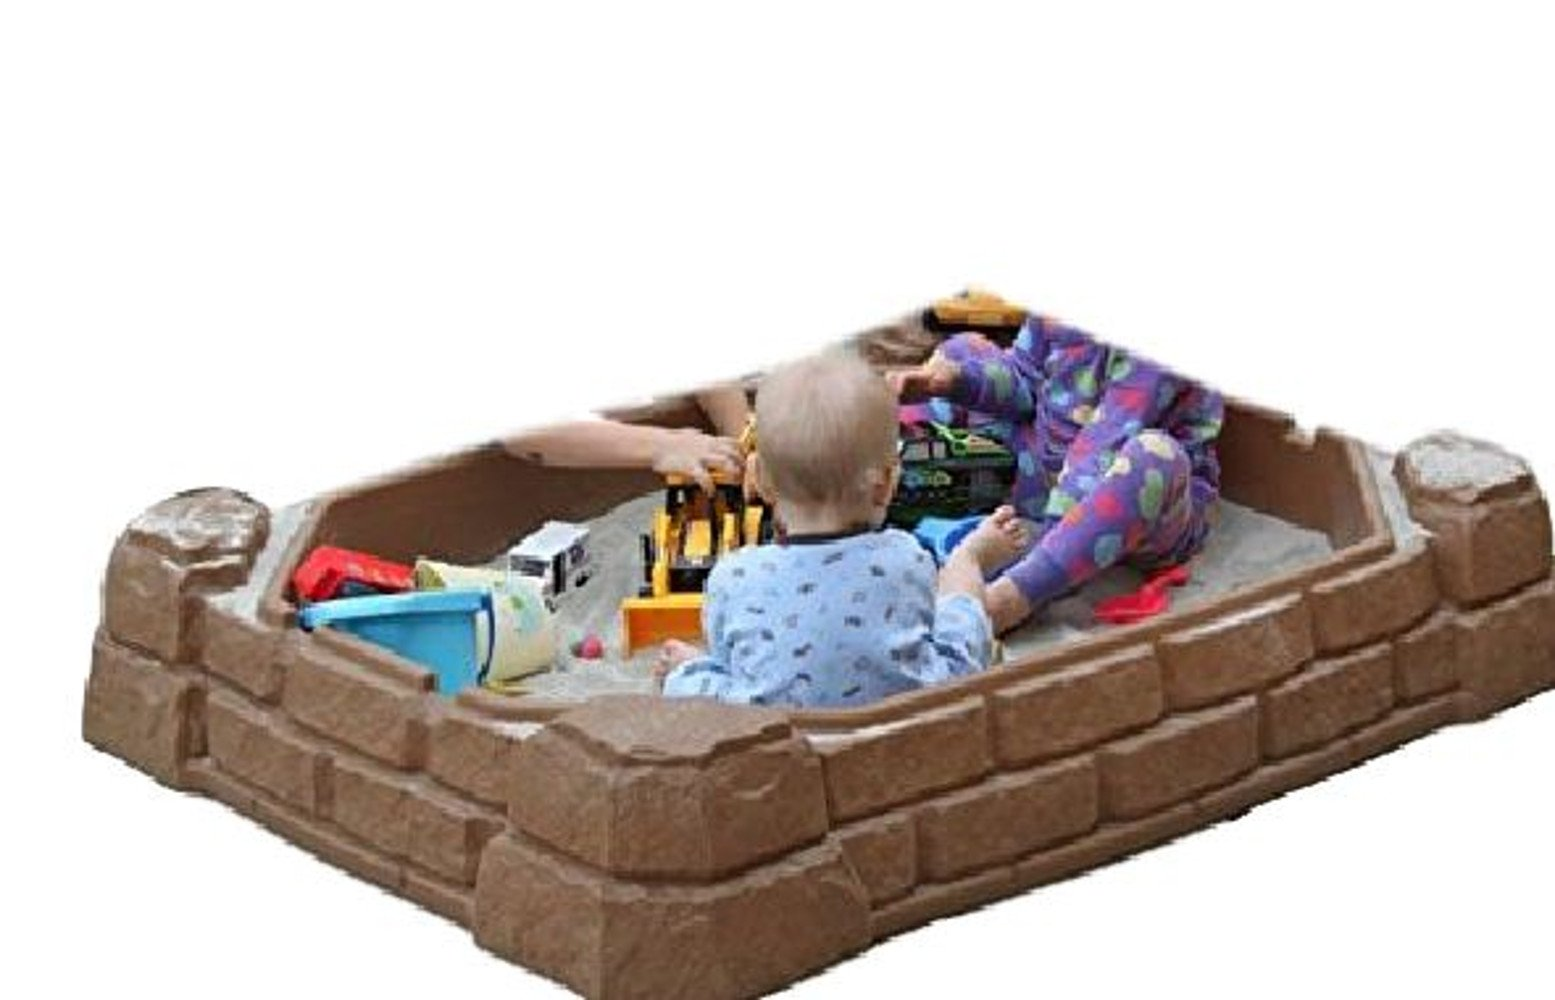 STS SUPPLIES LTD Sandbox with Lid Toys for Kids Outdoor Sandbox Large Plastic Sandbox with Cover Backyard Toddler Children & eBook by AllTim3Shopping by STS SUPPLIES LTD